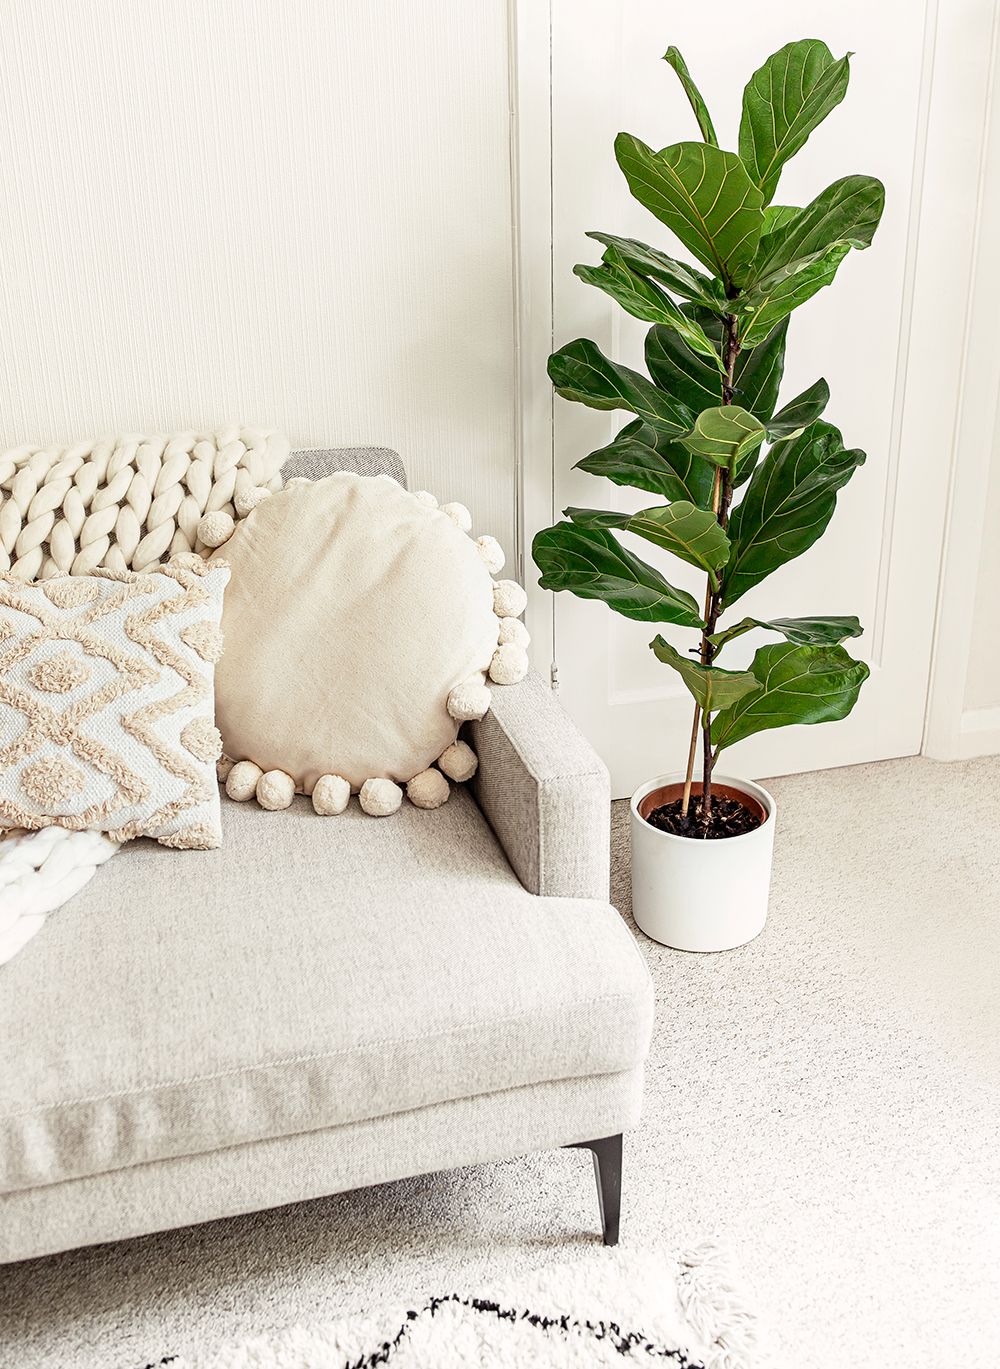 fiddle-leaf-fig-Ficus-lyrata-kelseyinlondon-homewithkelsey-plant-guide-best-indoor-plants